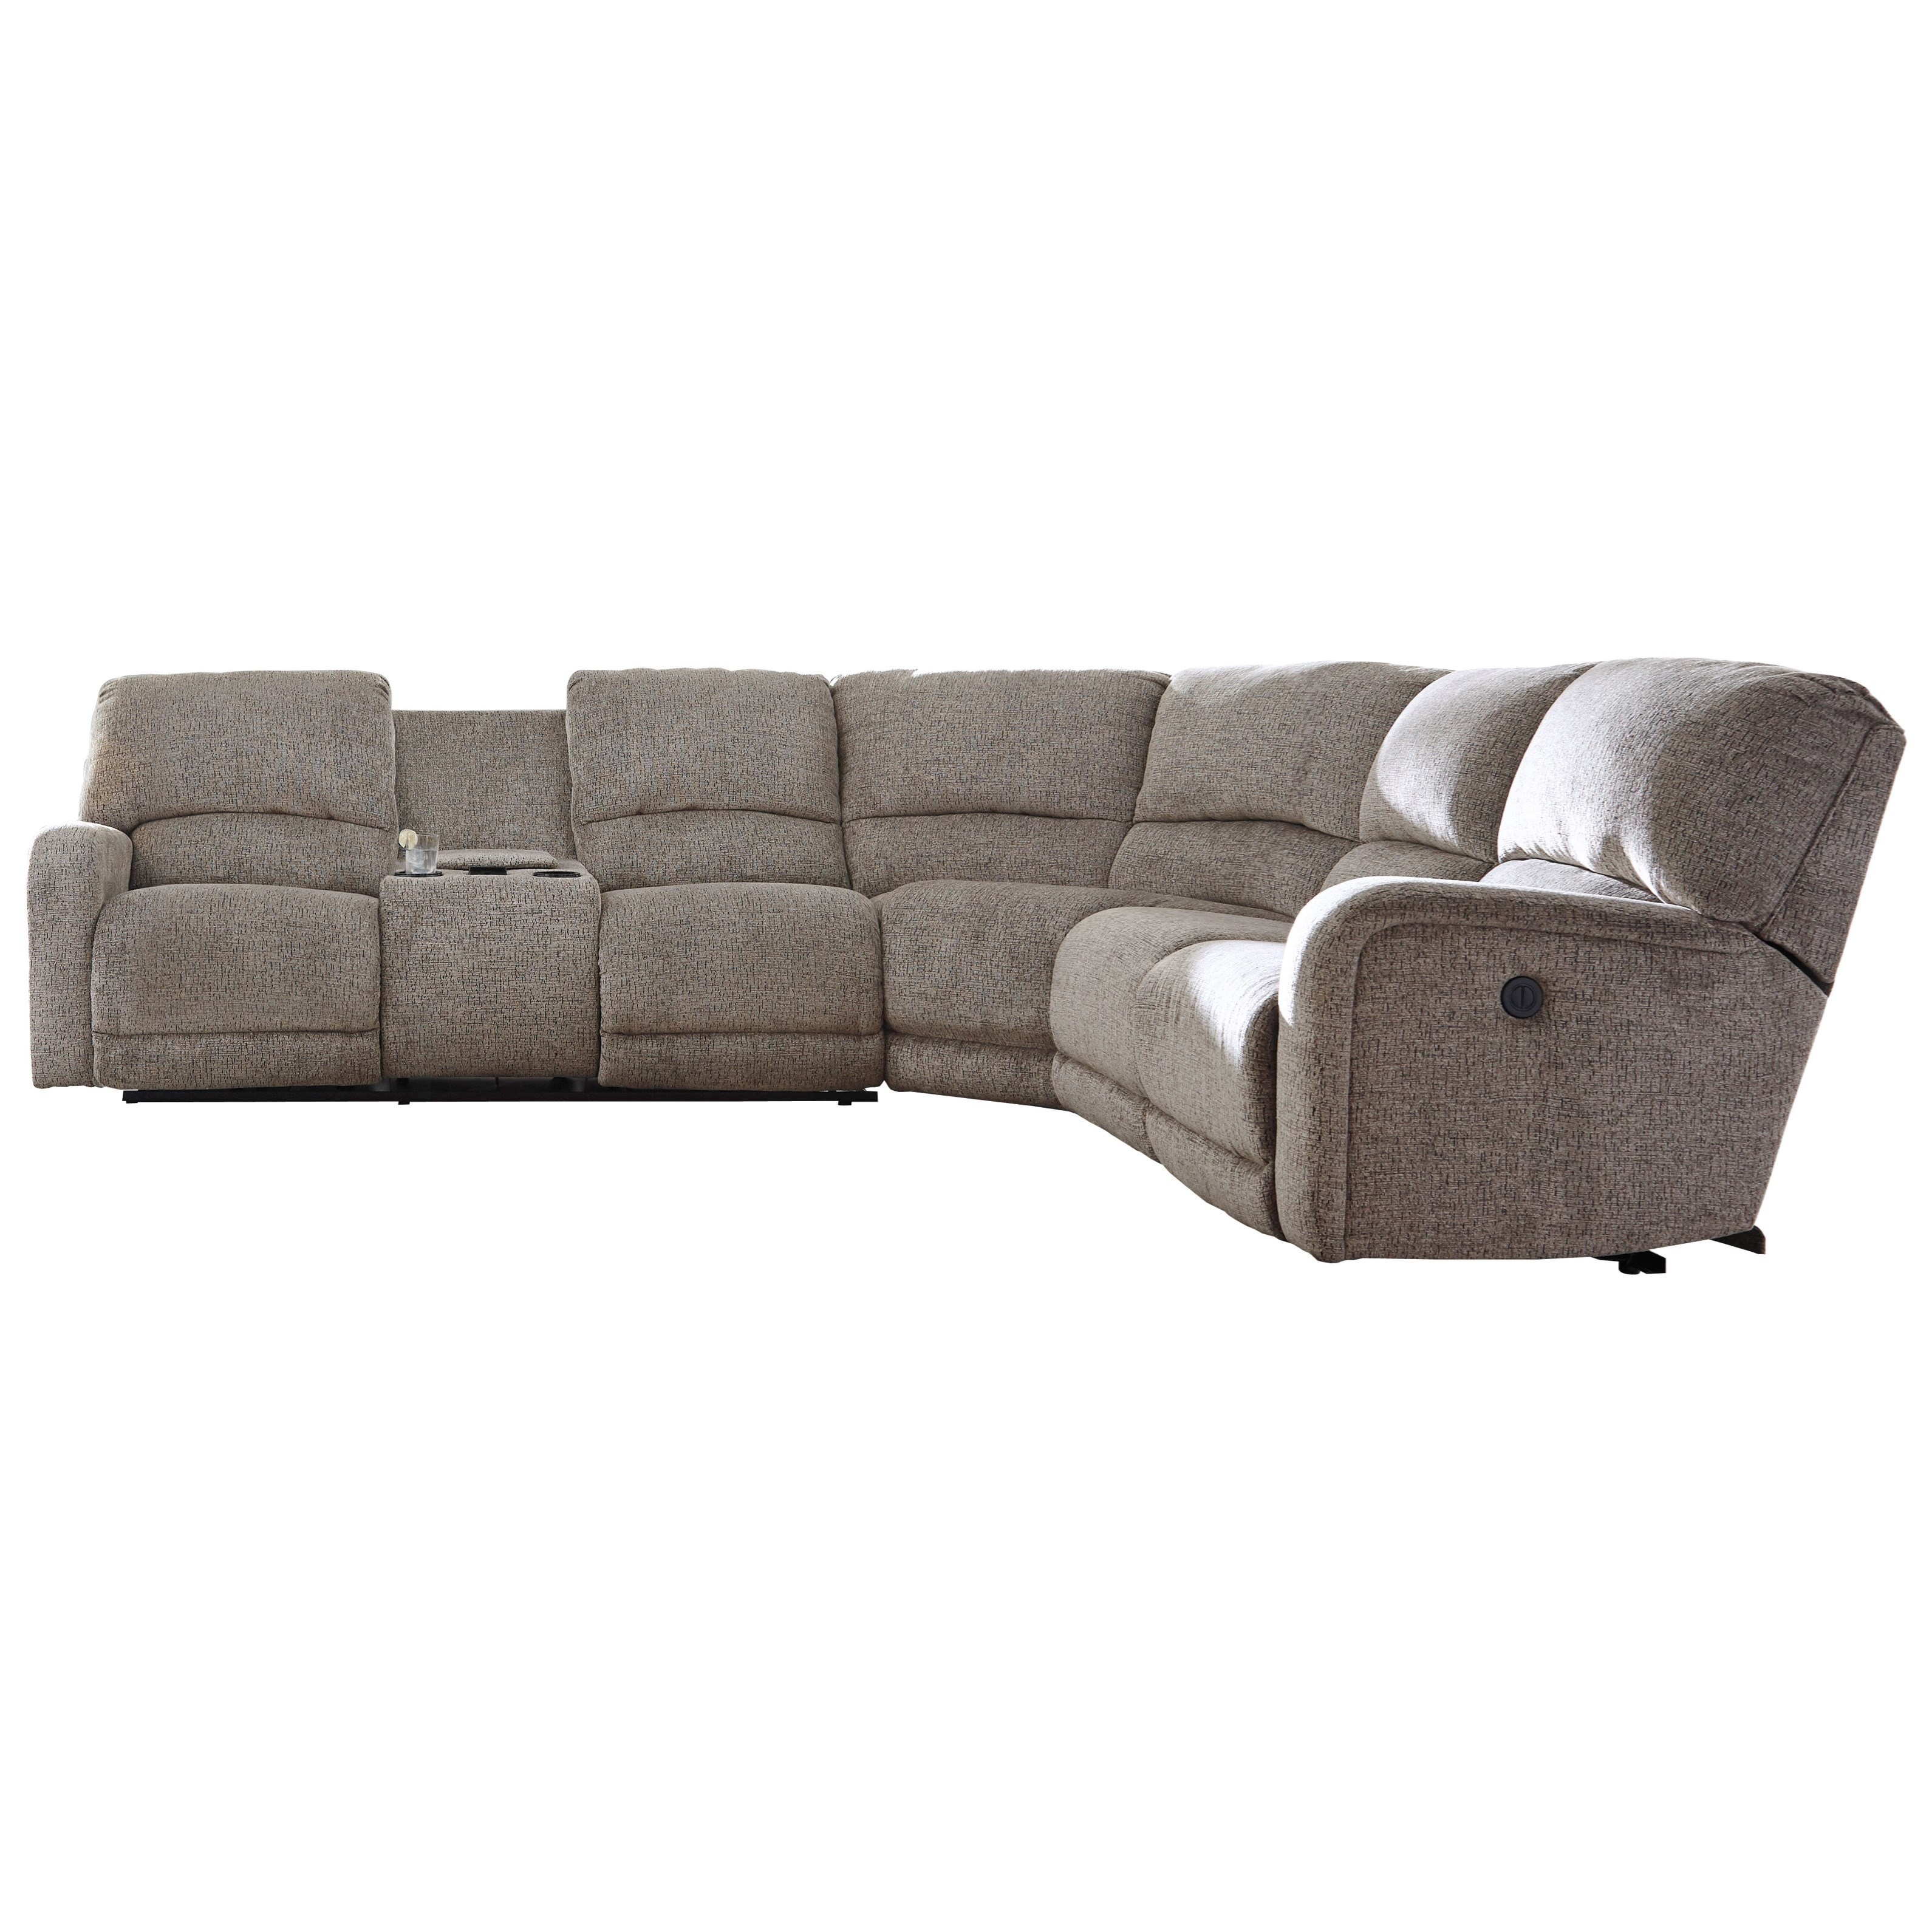 Signature Design by Ashley Pittsfield Power Reclining Sectional with Left Storage Console Loveseat  sc 1 st  Wayside Furniture & Signature Design by Ashley Pittsfield Power Reclining Sectional ... islam-shia.org